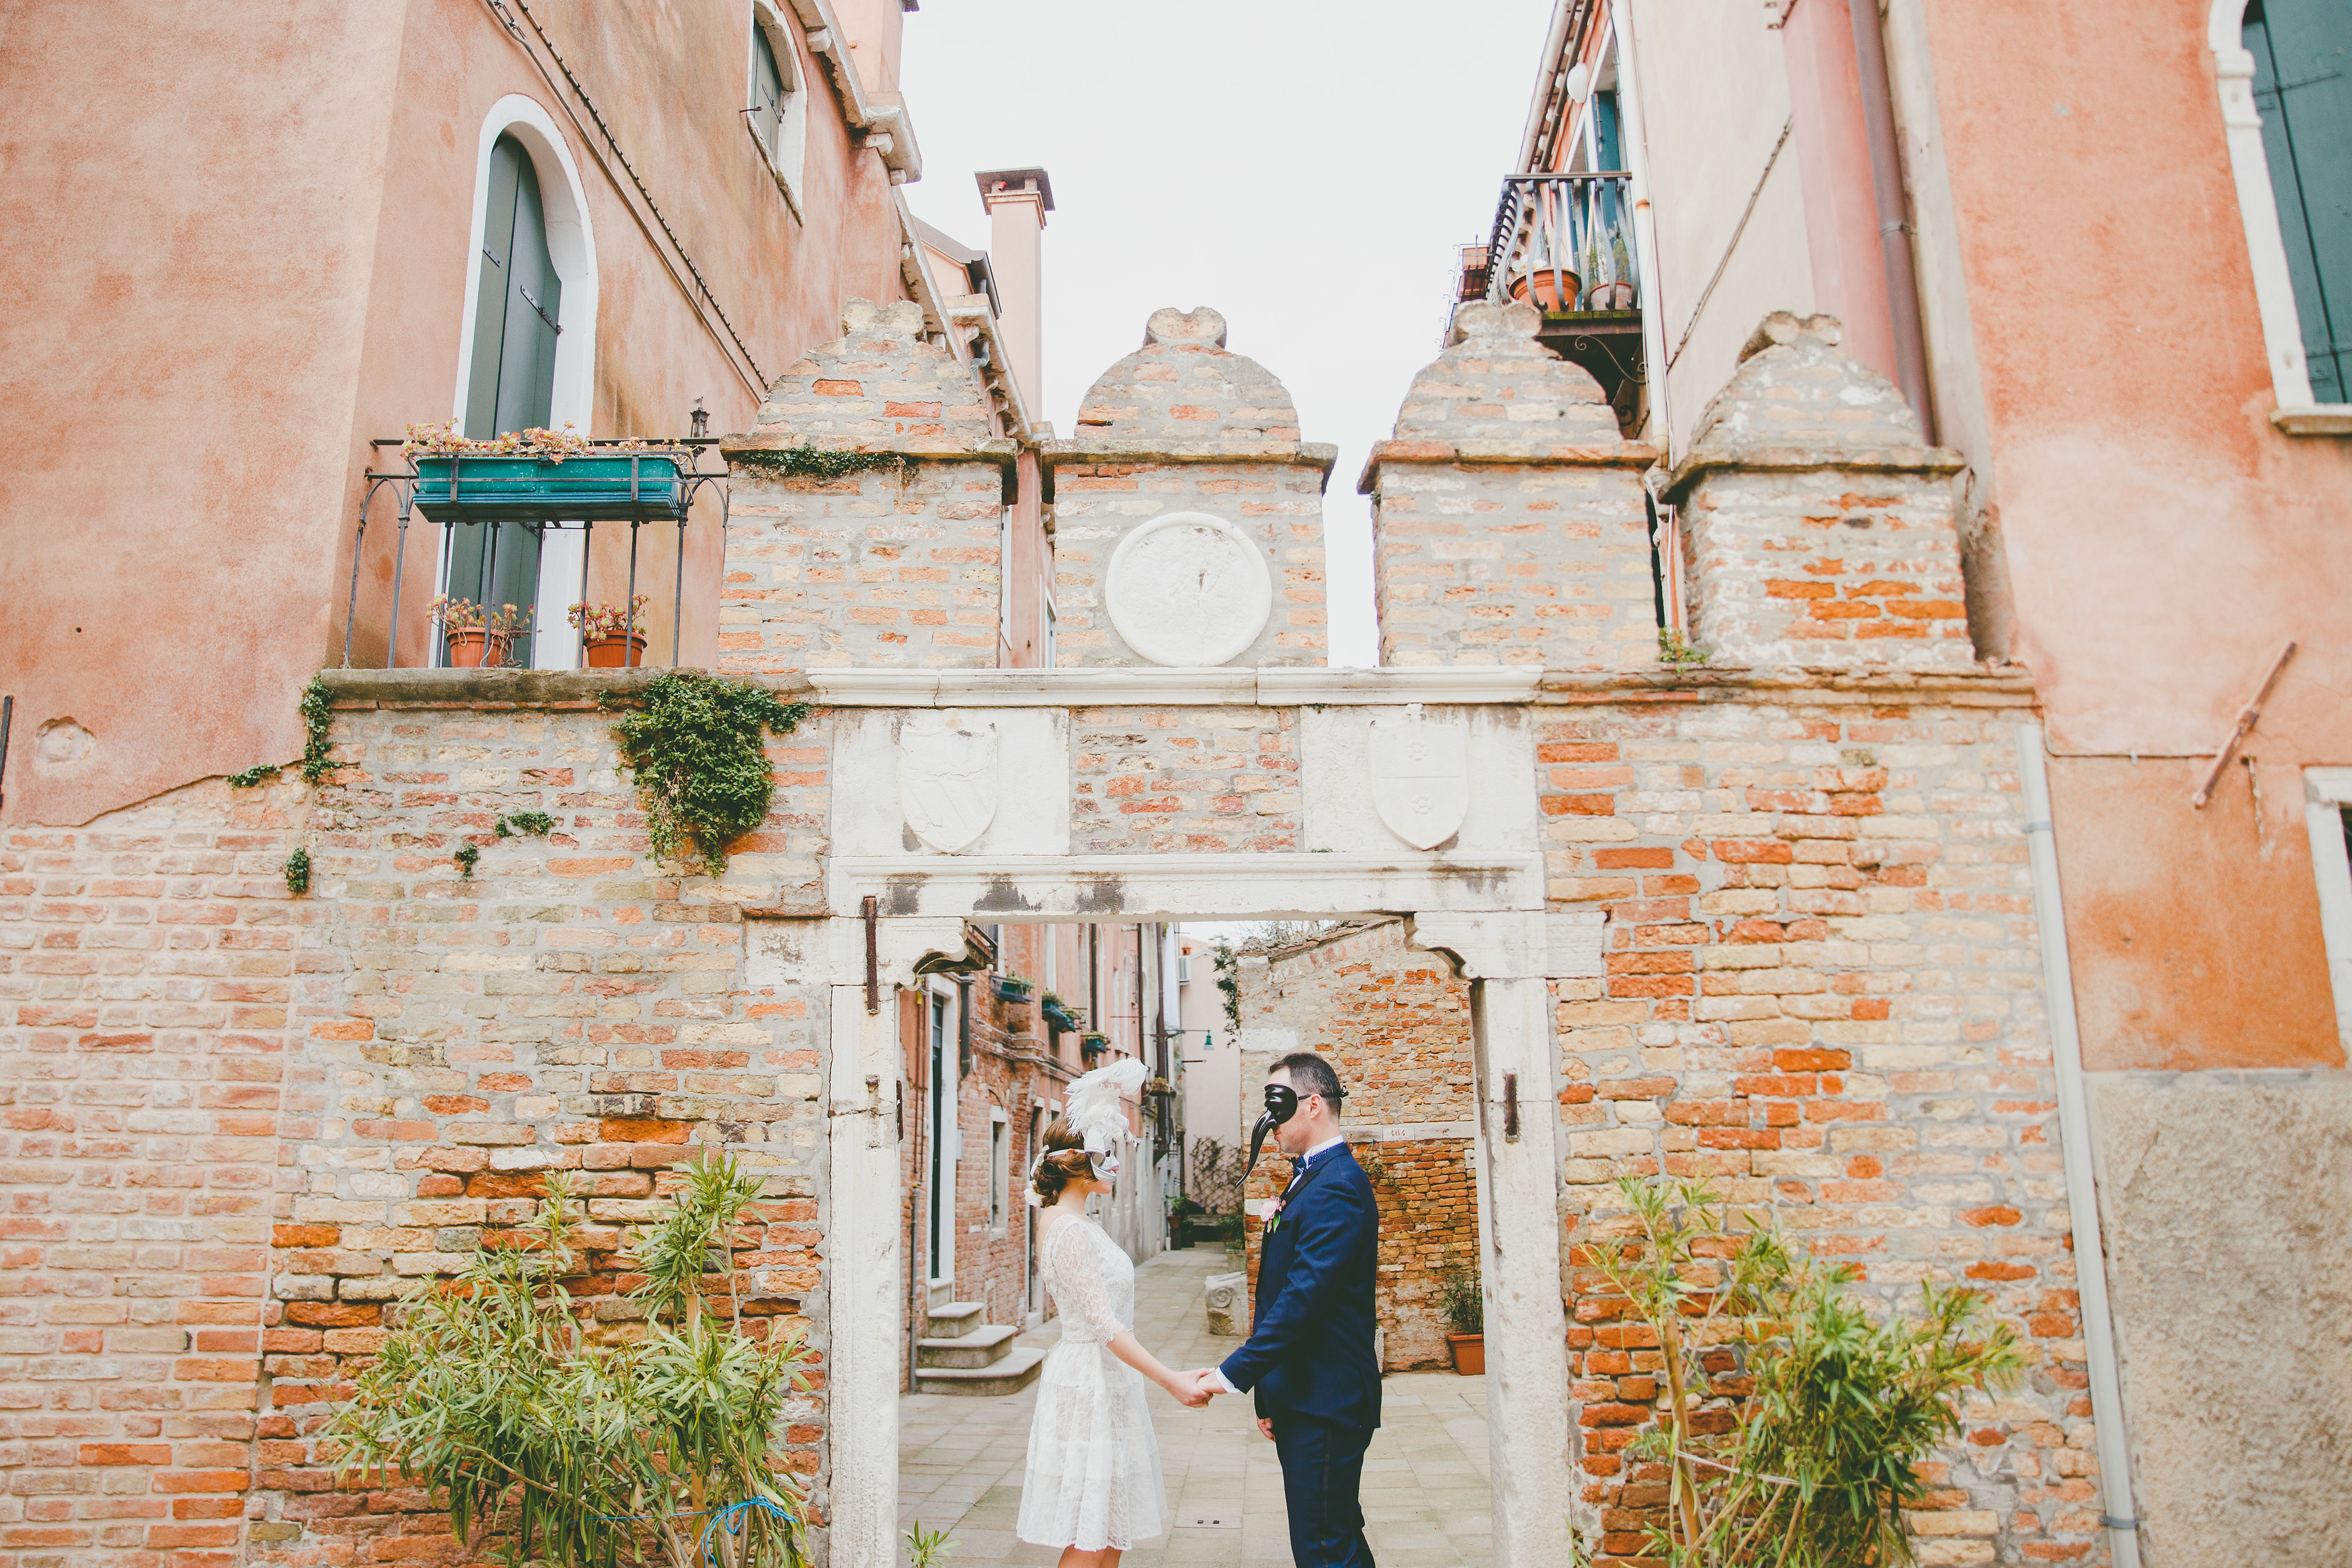 elopement pictures destination wedding photographer europe italy